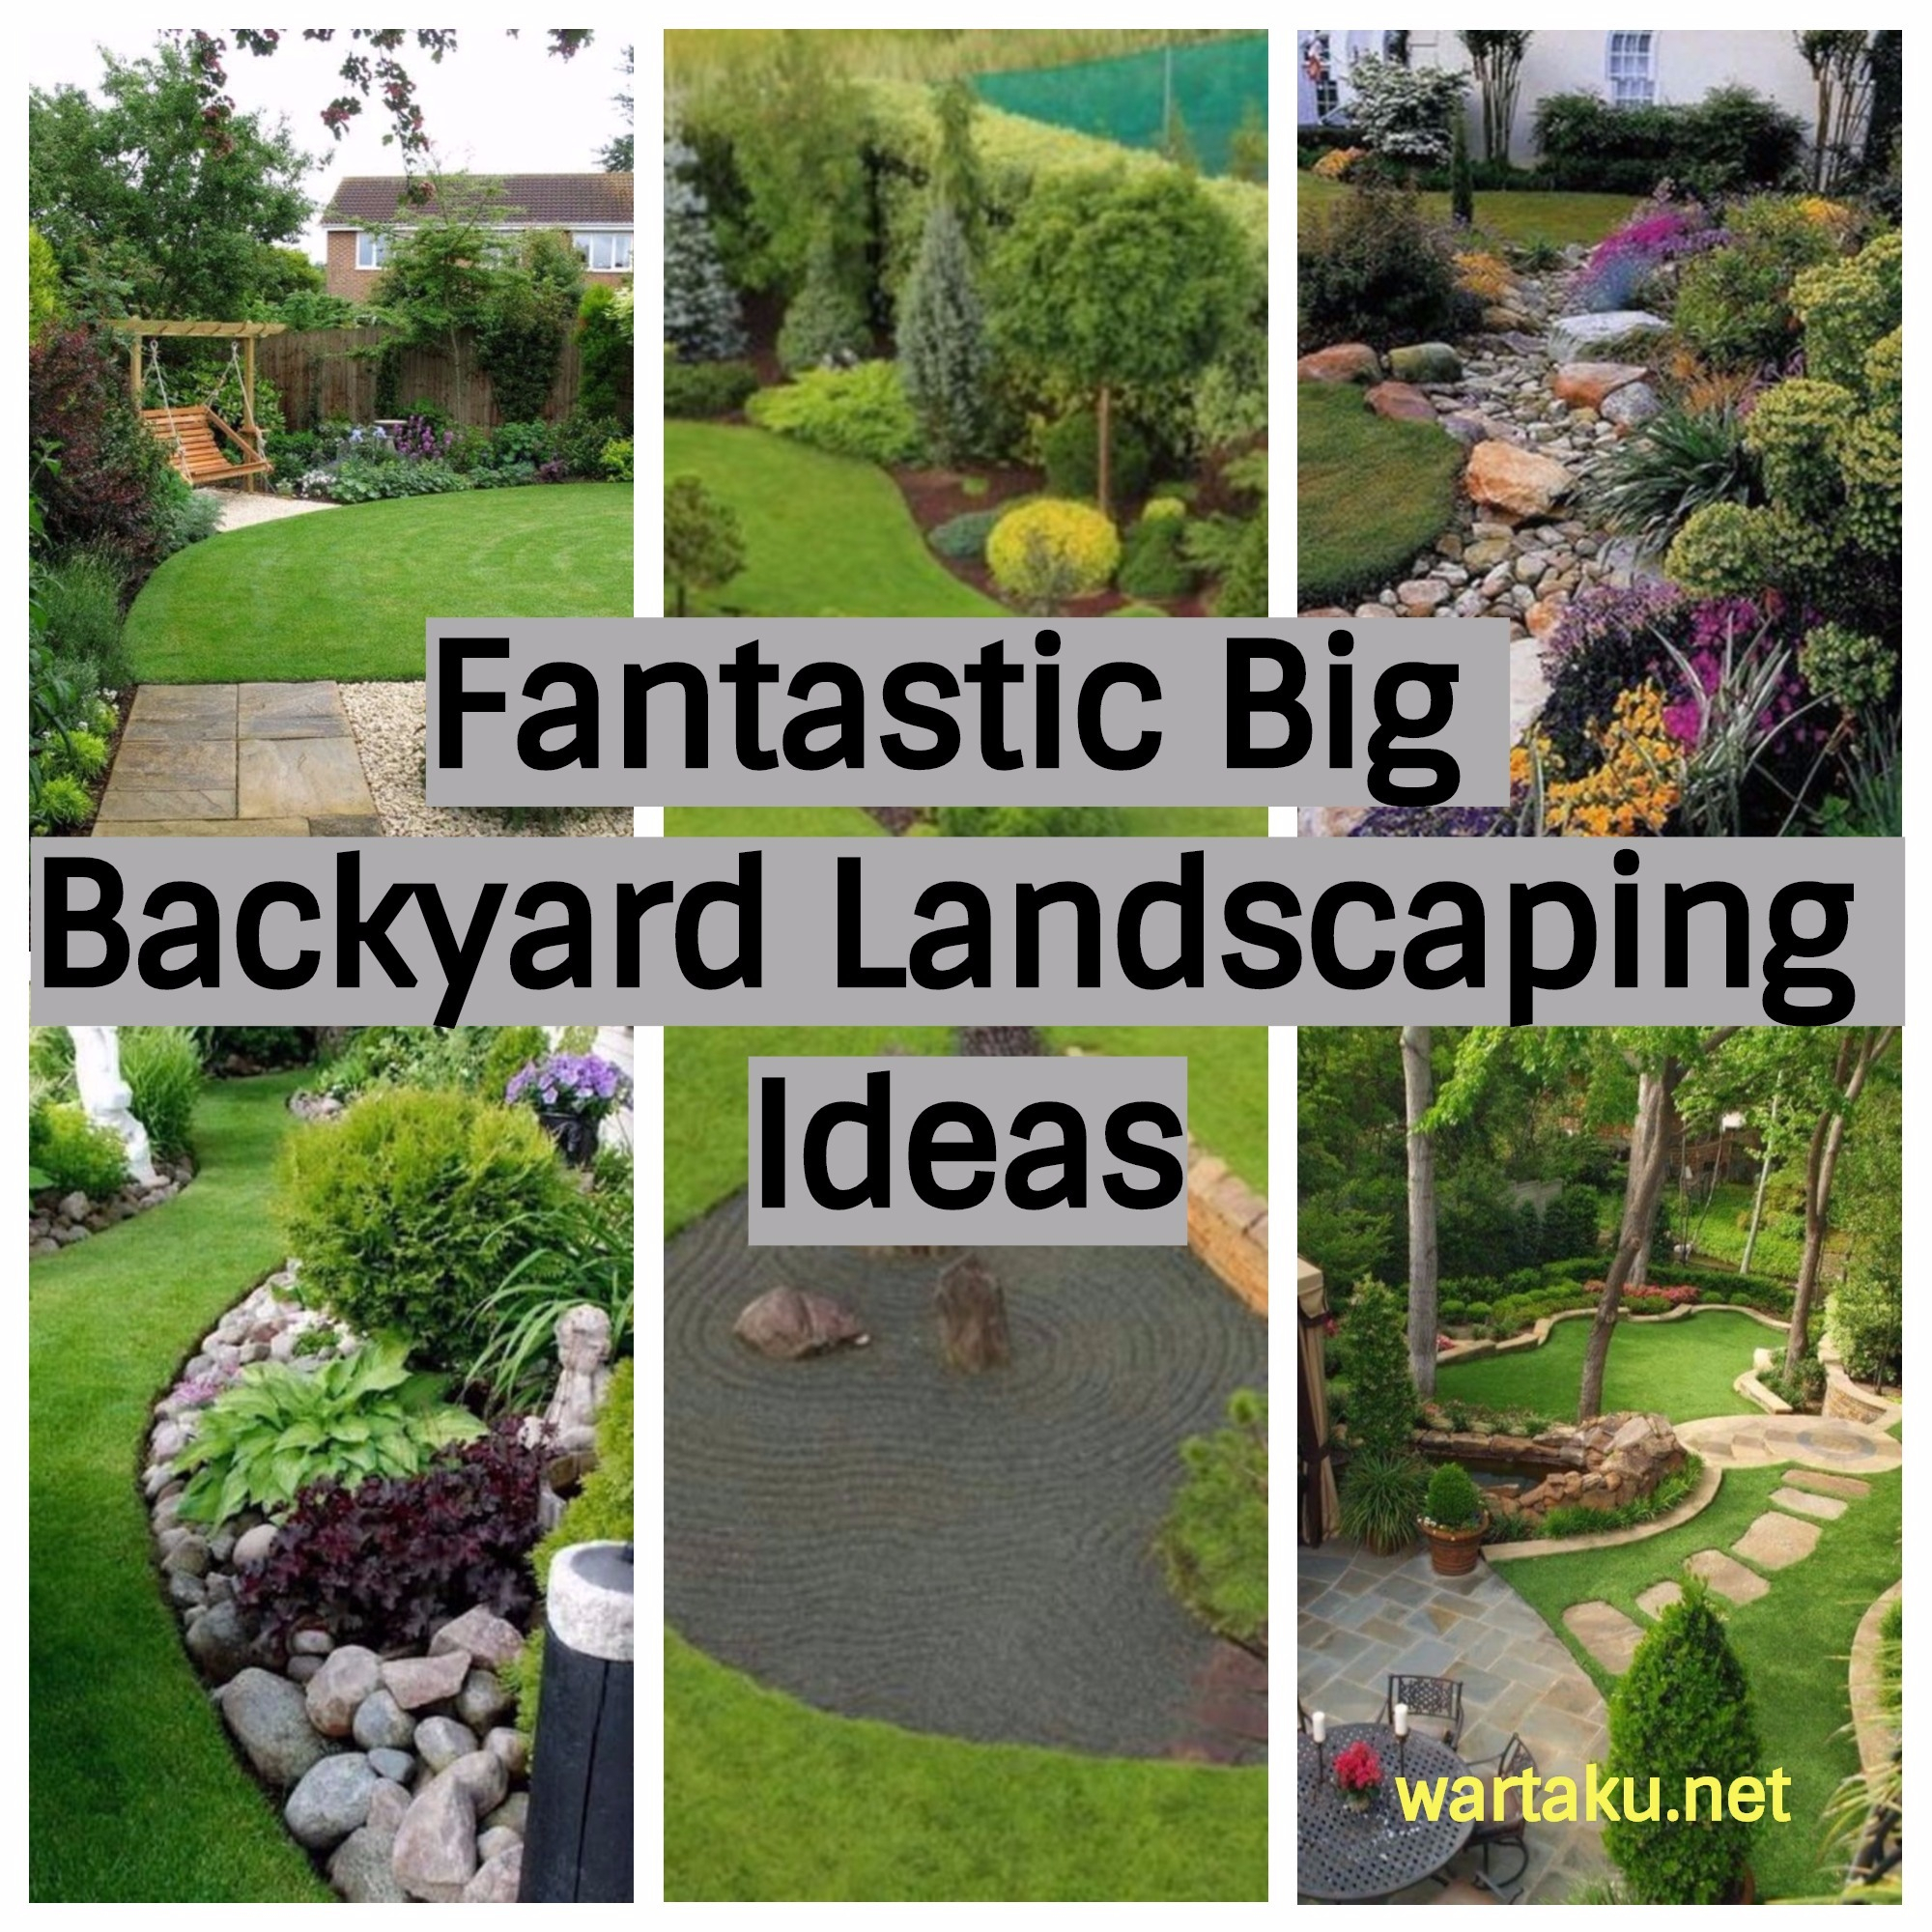 17 Fantastic Big Backyard Landscaping Ideas Wartaku with 10 Some of the Coolest Initiatives of How to Upgrade Big Backyard Ideas